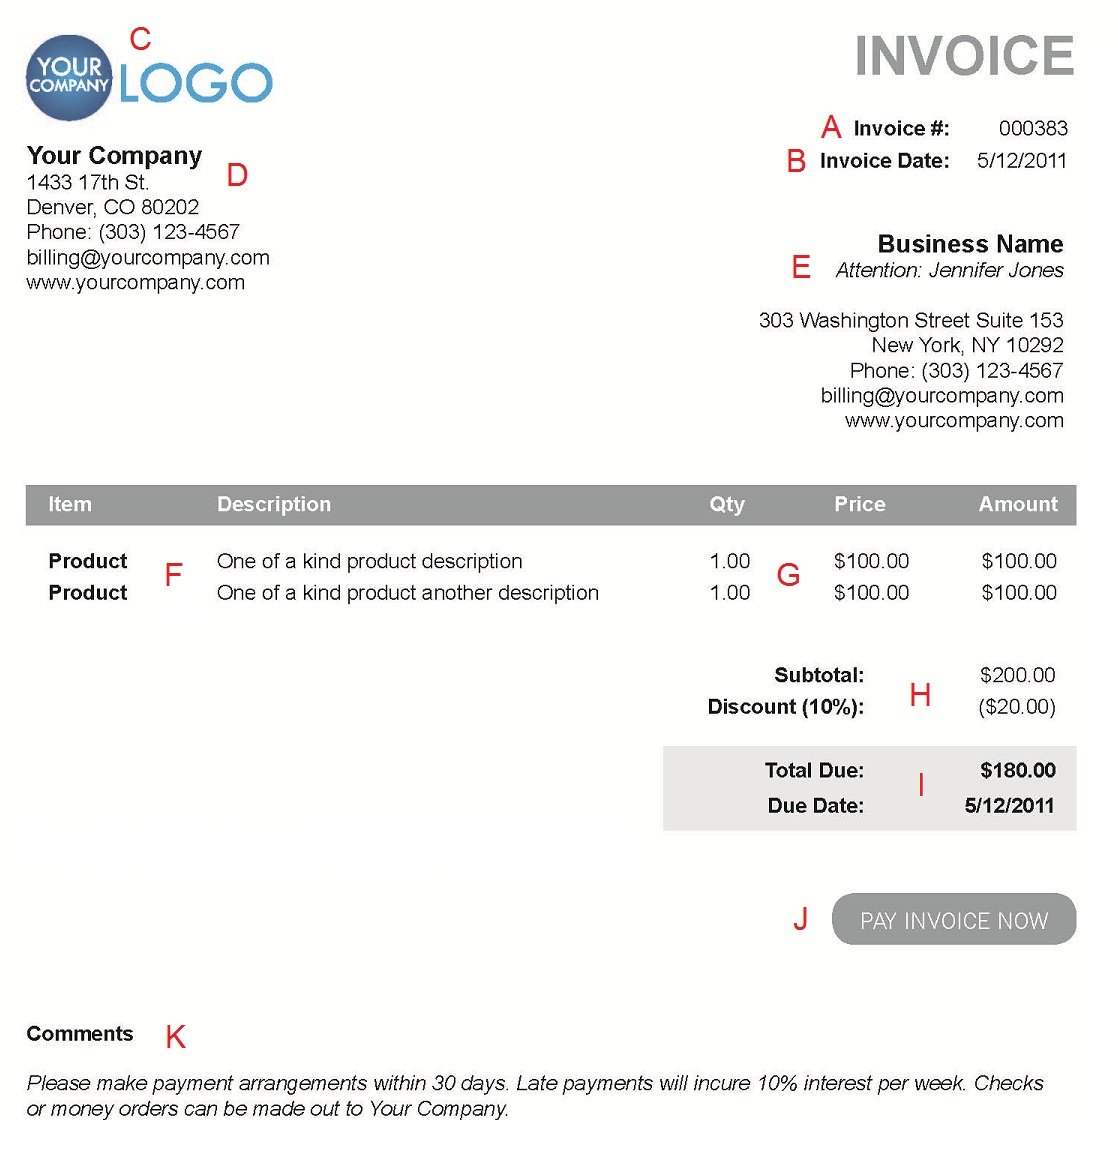 Musclebuildingtipsus  Remarkable The  Different Sections Of An Electronic Payment Invoice With Hot A  With Extraordinary Citizen Receipt Printer Also Define Gross Receipts In Addition Free Online Receipt Maker And Read Receipt For Gmail As Well As Free Printable Receipt Additionally Email Receipt Template From Paysimplecom With Musclebuildingtipsus  Hot The  Different Sections Of An Electronic Payment Invoice With Extraordinary A  And Remarkable Citizen Receipt Printer Also Define Gross Receipts In Addition Free Online Receipt Maker From Paysimplecom